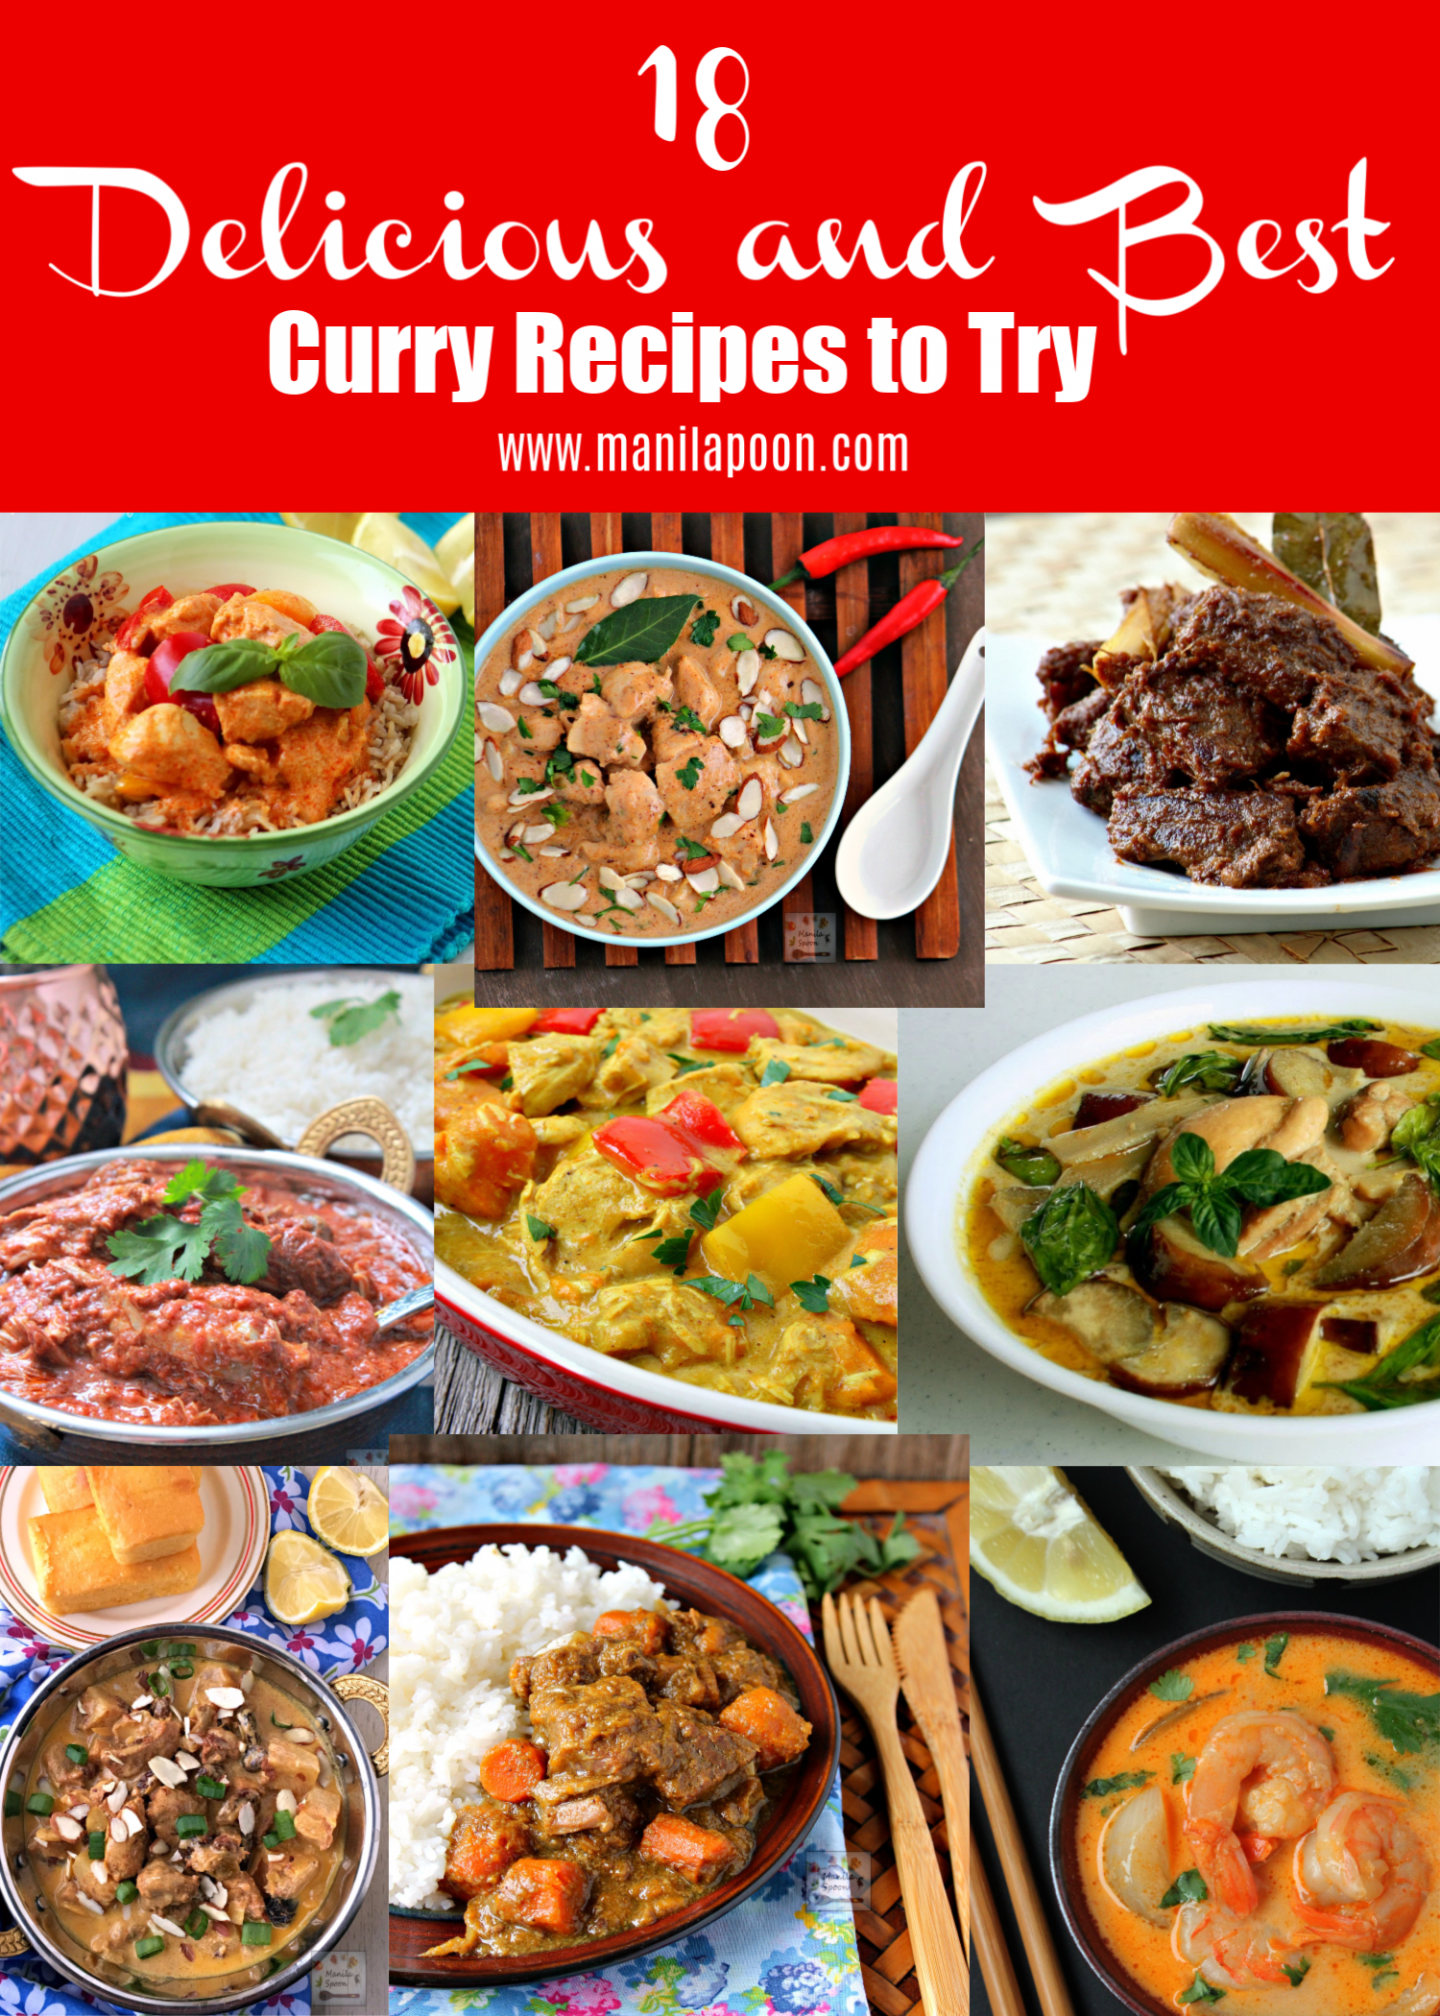 No need to make the same old, same old curry dishes all the time. Try these 18 Delicious and Best Curry Recipes so you'll never run out of ideas for your next dinner! #curry #curryrecipes #chickencurry